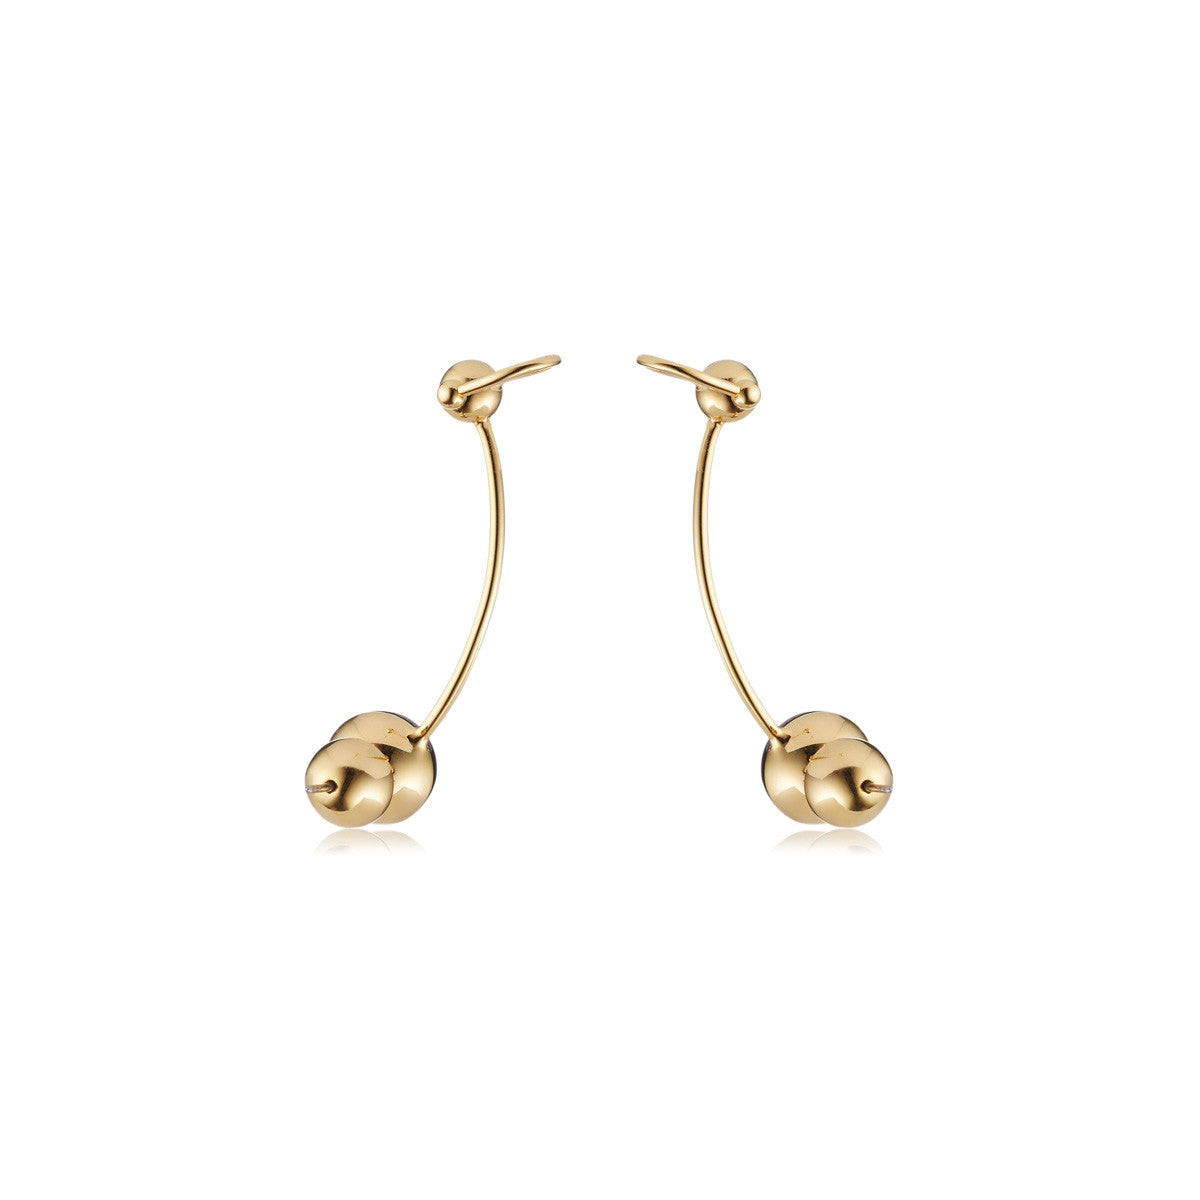 Solid brass, 18K gold plated Stella Crinita ear cuffs are set in hand cut natural black onyx - back